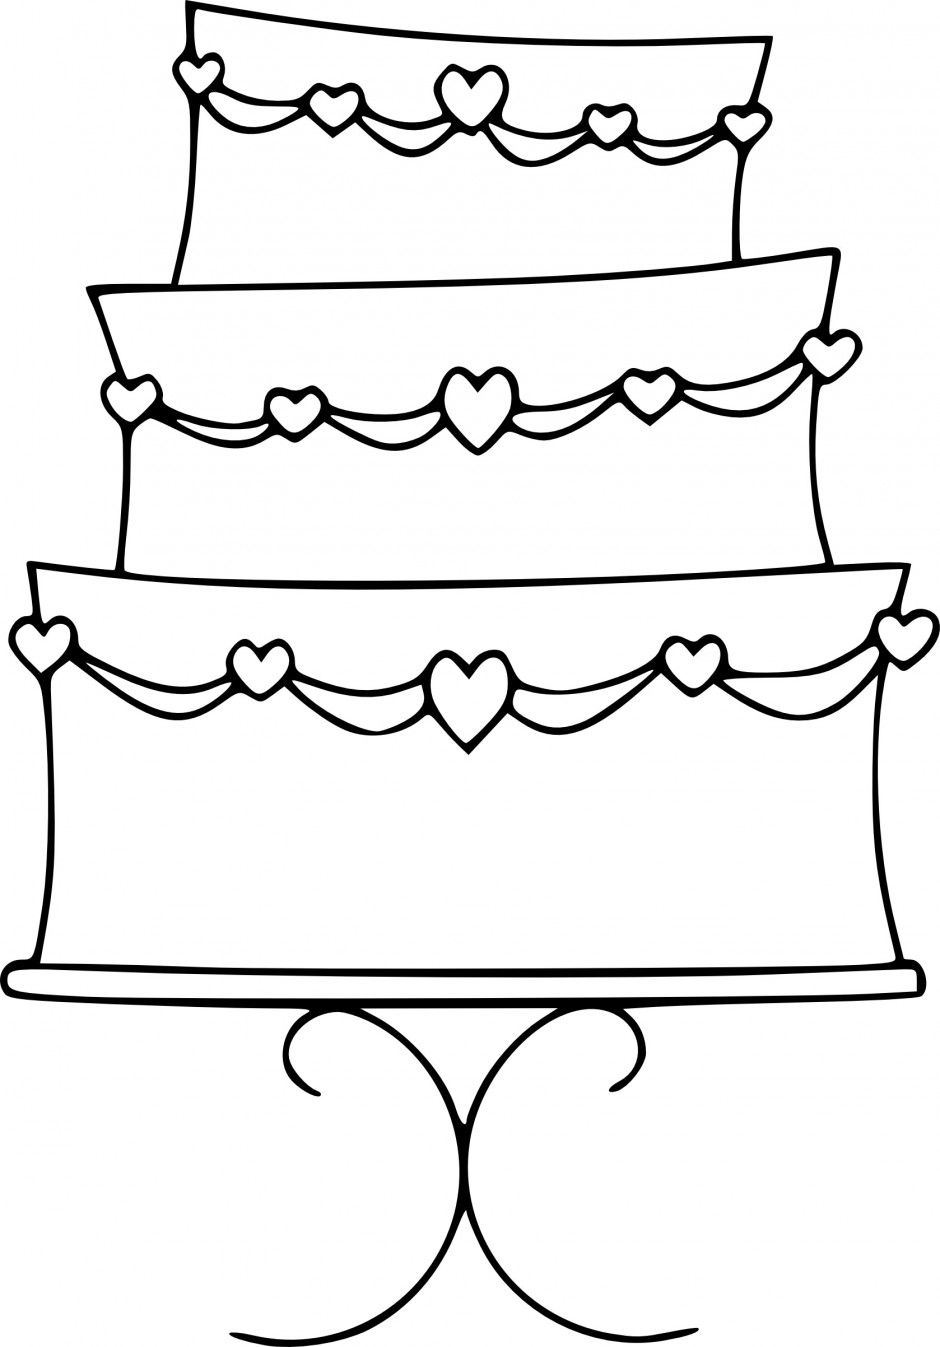 Printable Cupcake Coloring Pages For Kids Wedding Coloring Book ...